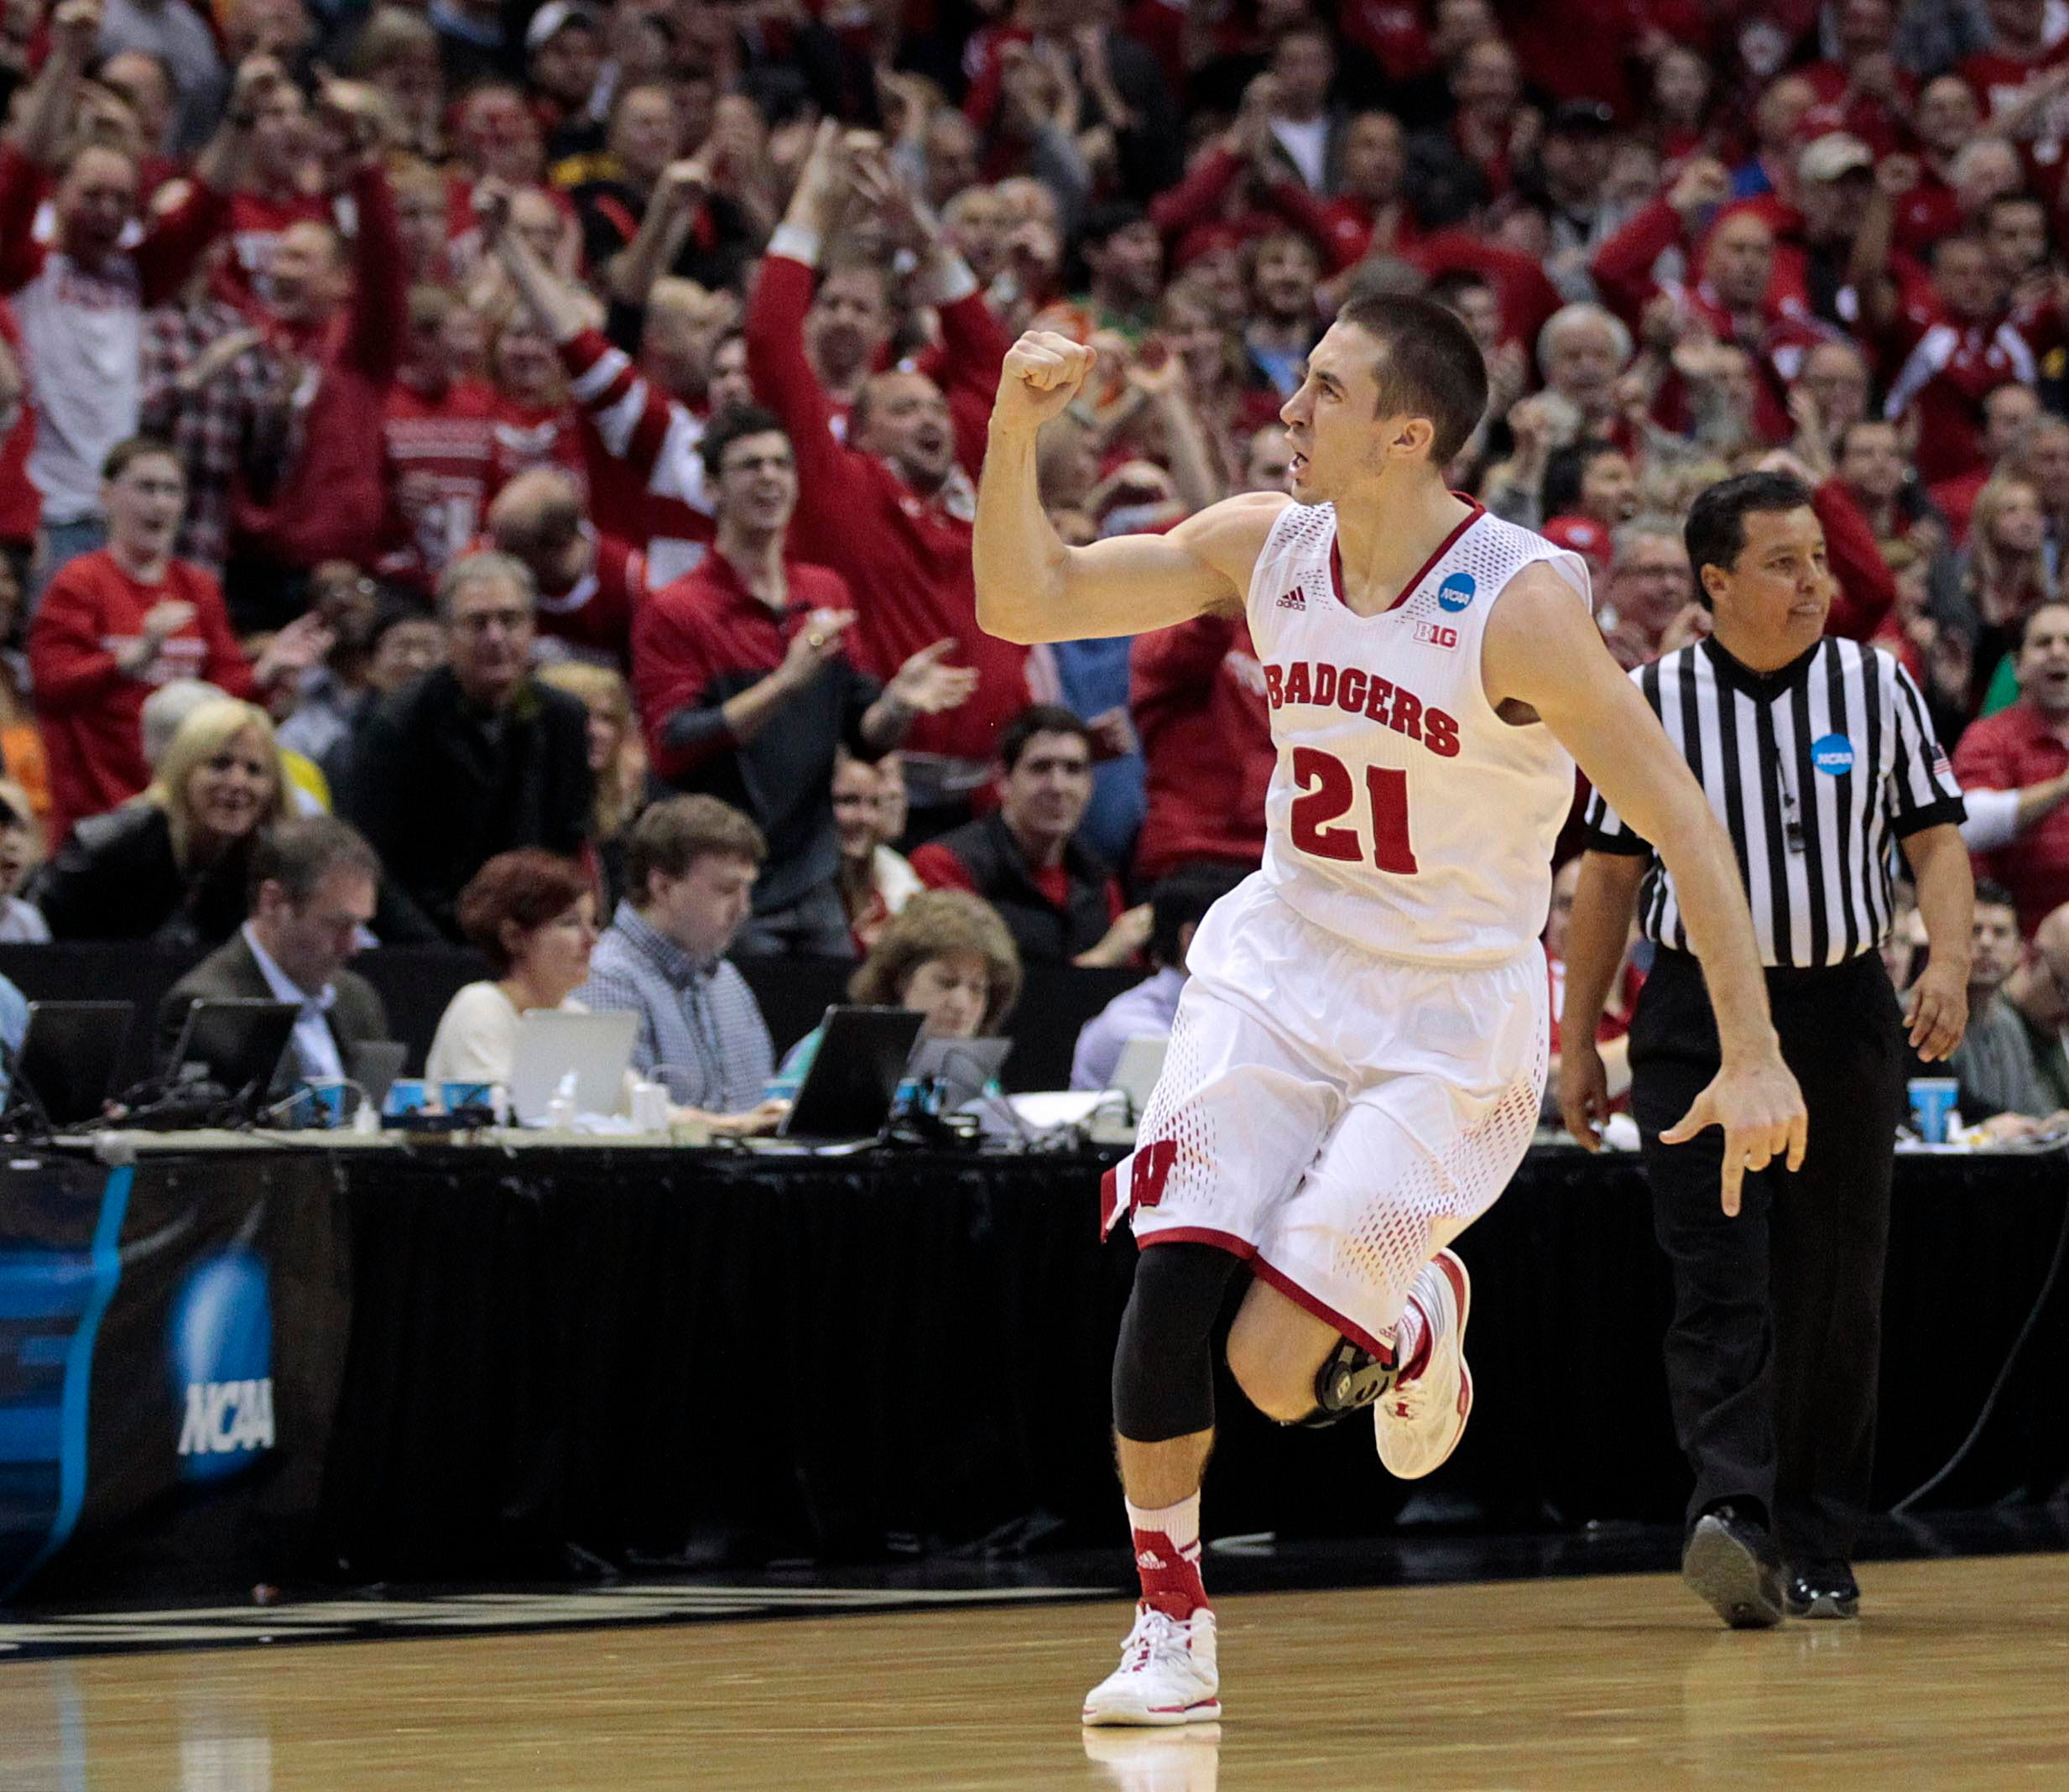 Josh Gasser  celebrates a Wisconsin lead in the final minutes against Oregon in a 2014 NCAA Tournament game at the BMO Harris Bradley Center.